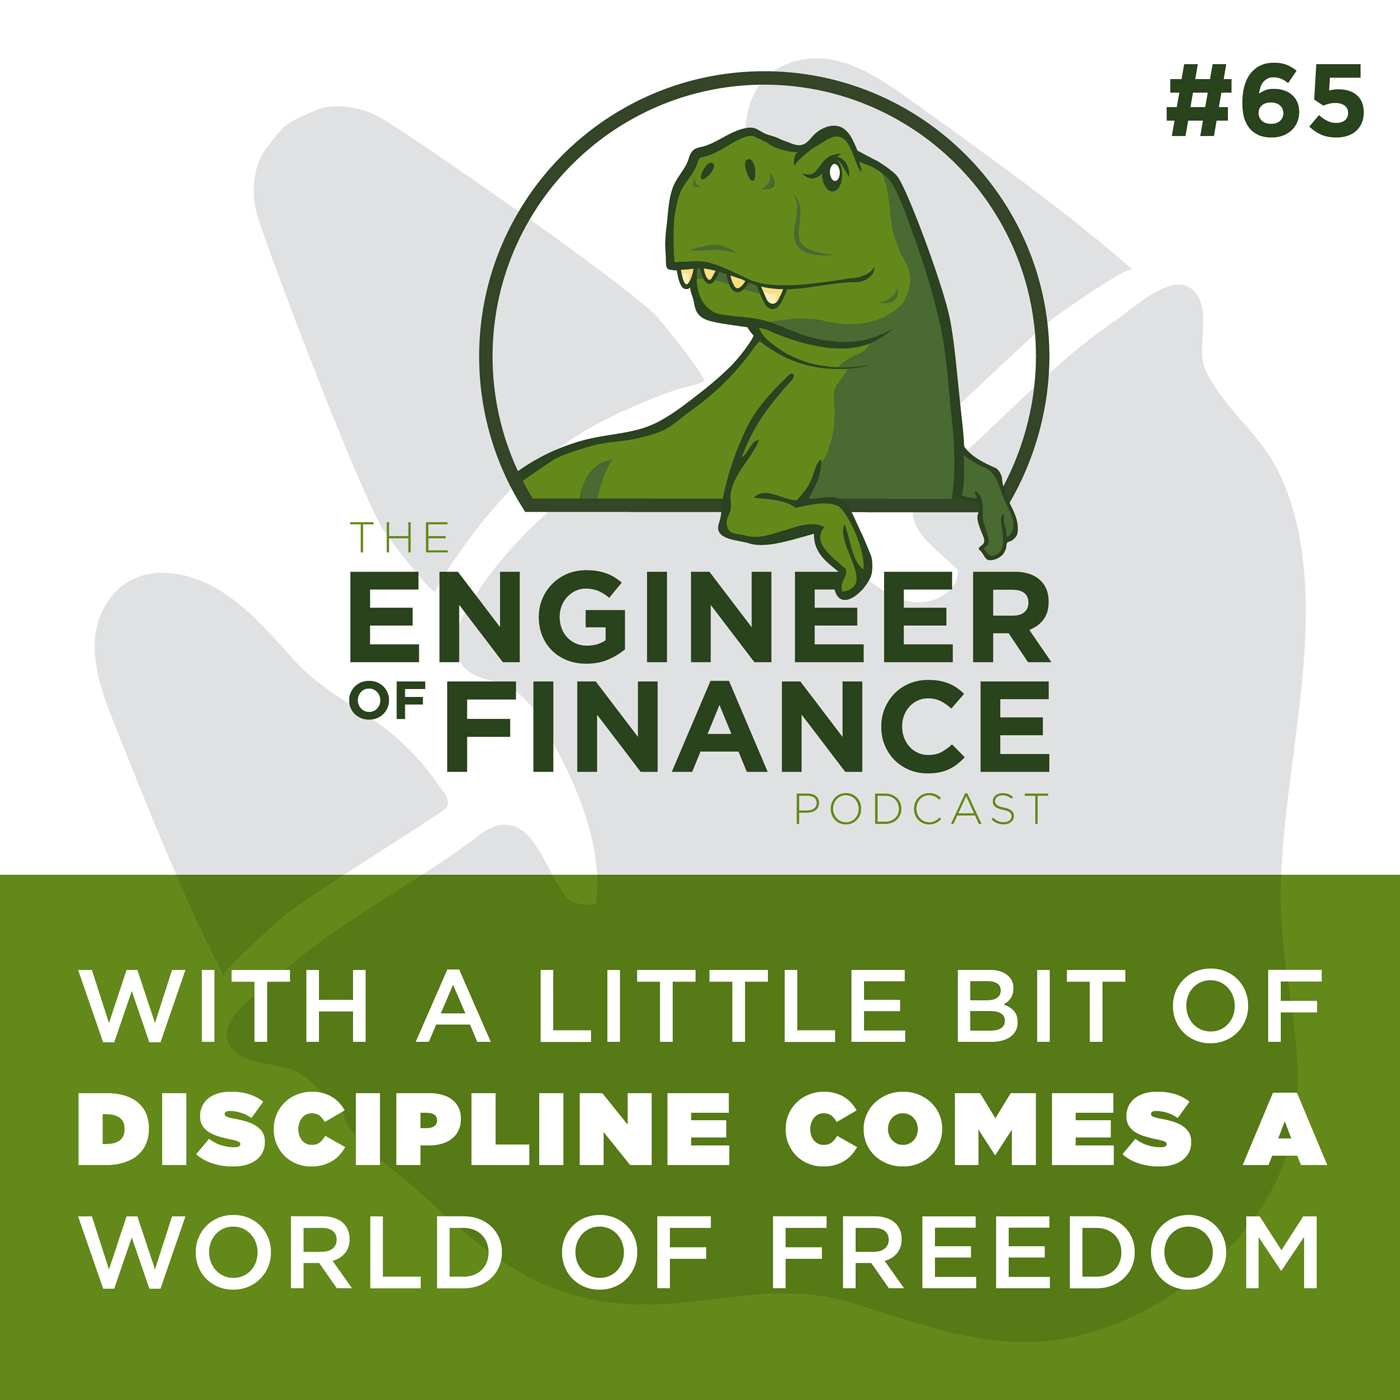 With A Little Bit Of Discipline Comes A World Of Freedom – Episode 65